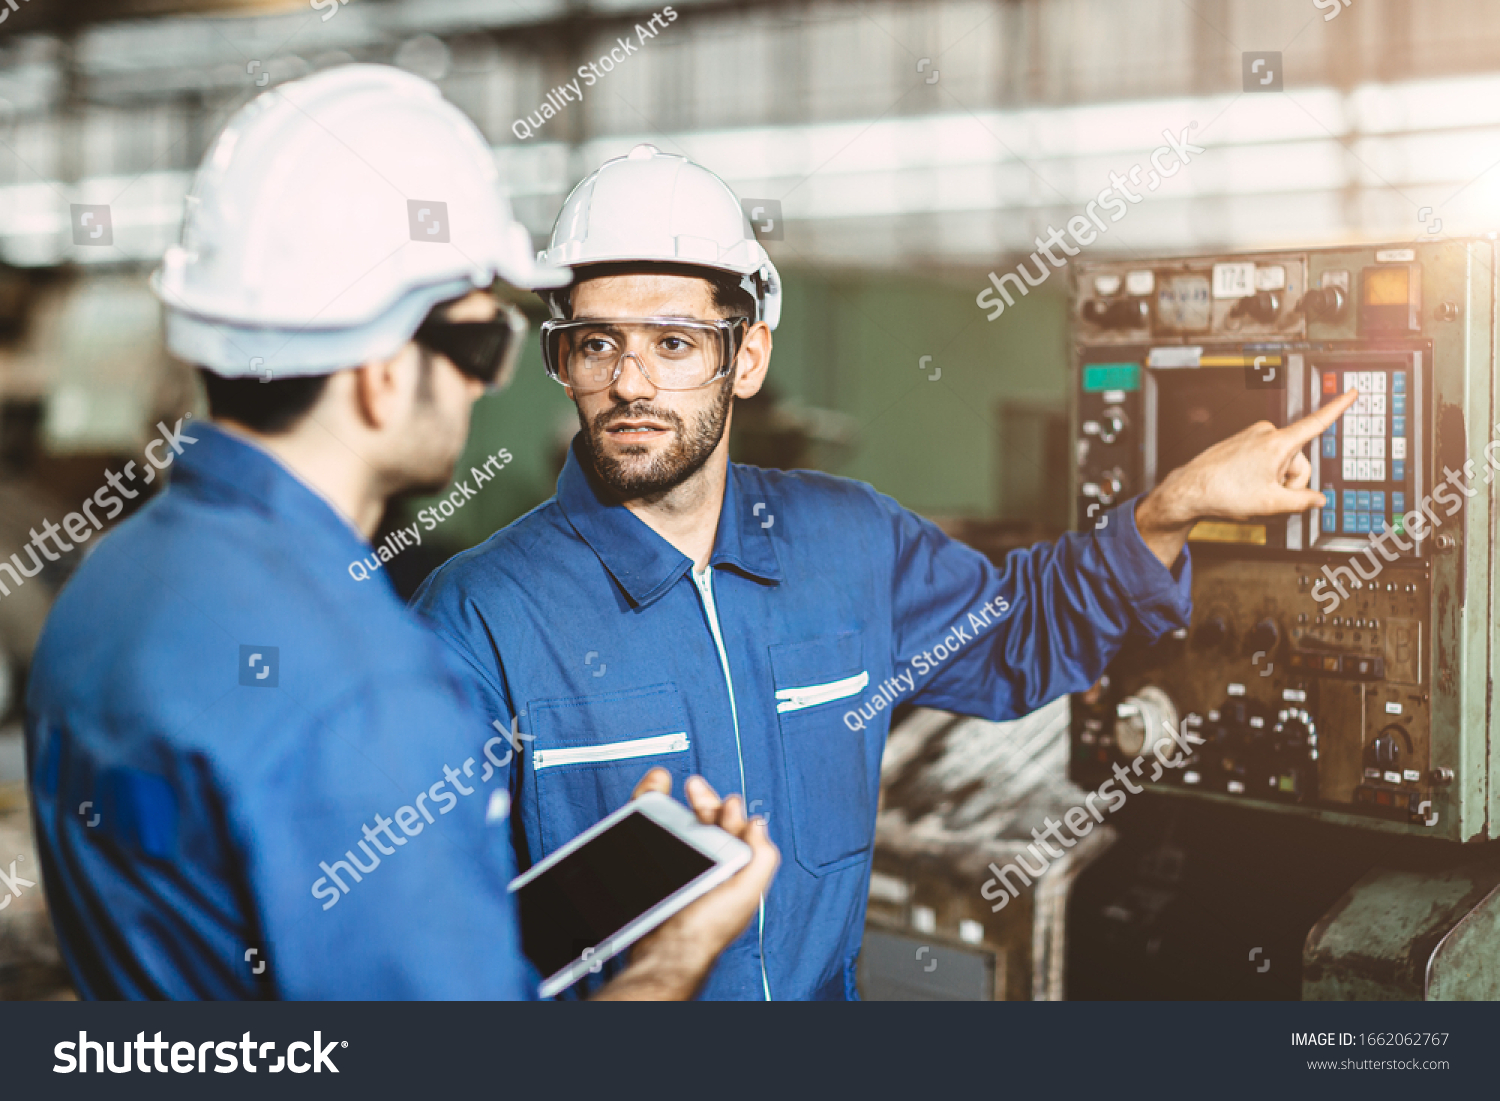 Engineer team talking together to discussion teach and learn give education technical about using machine in factory workplace. #1662062767